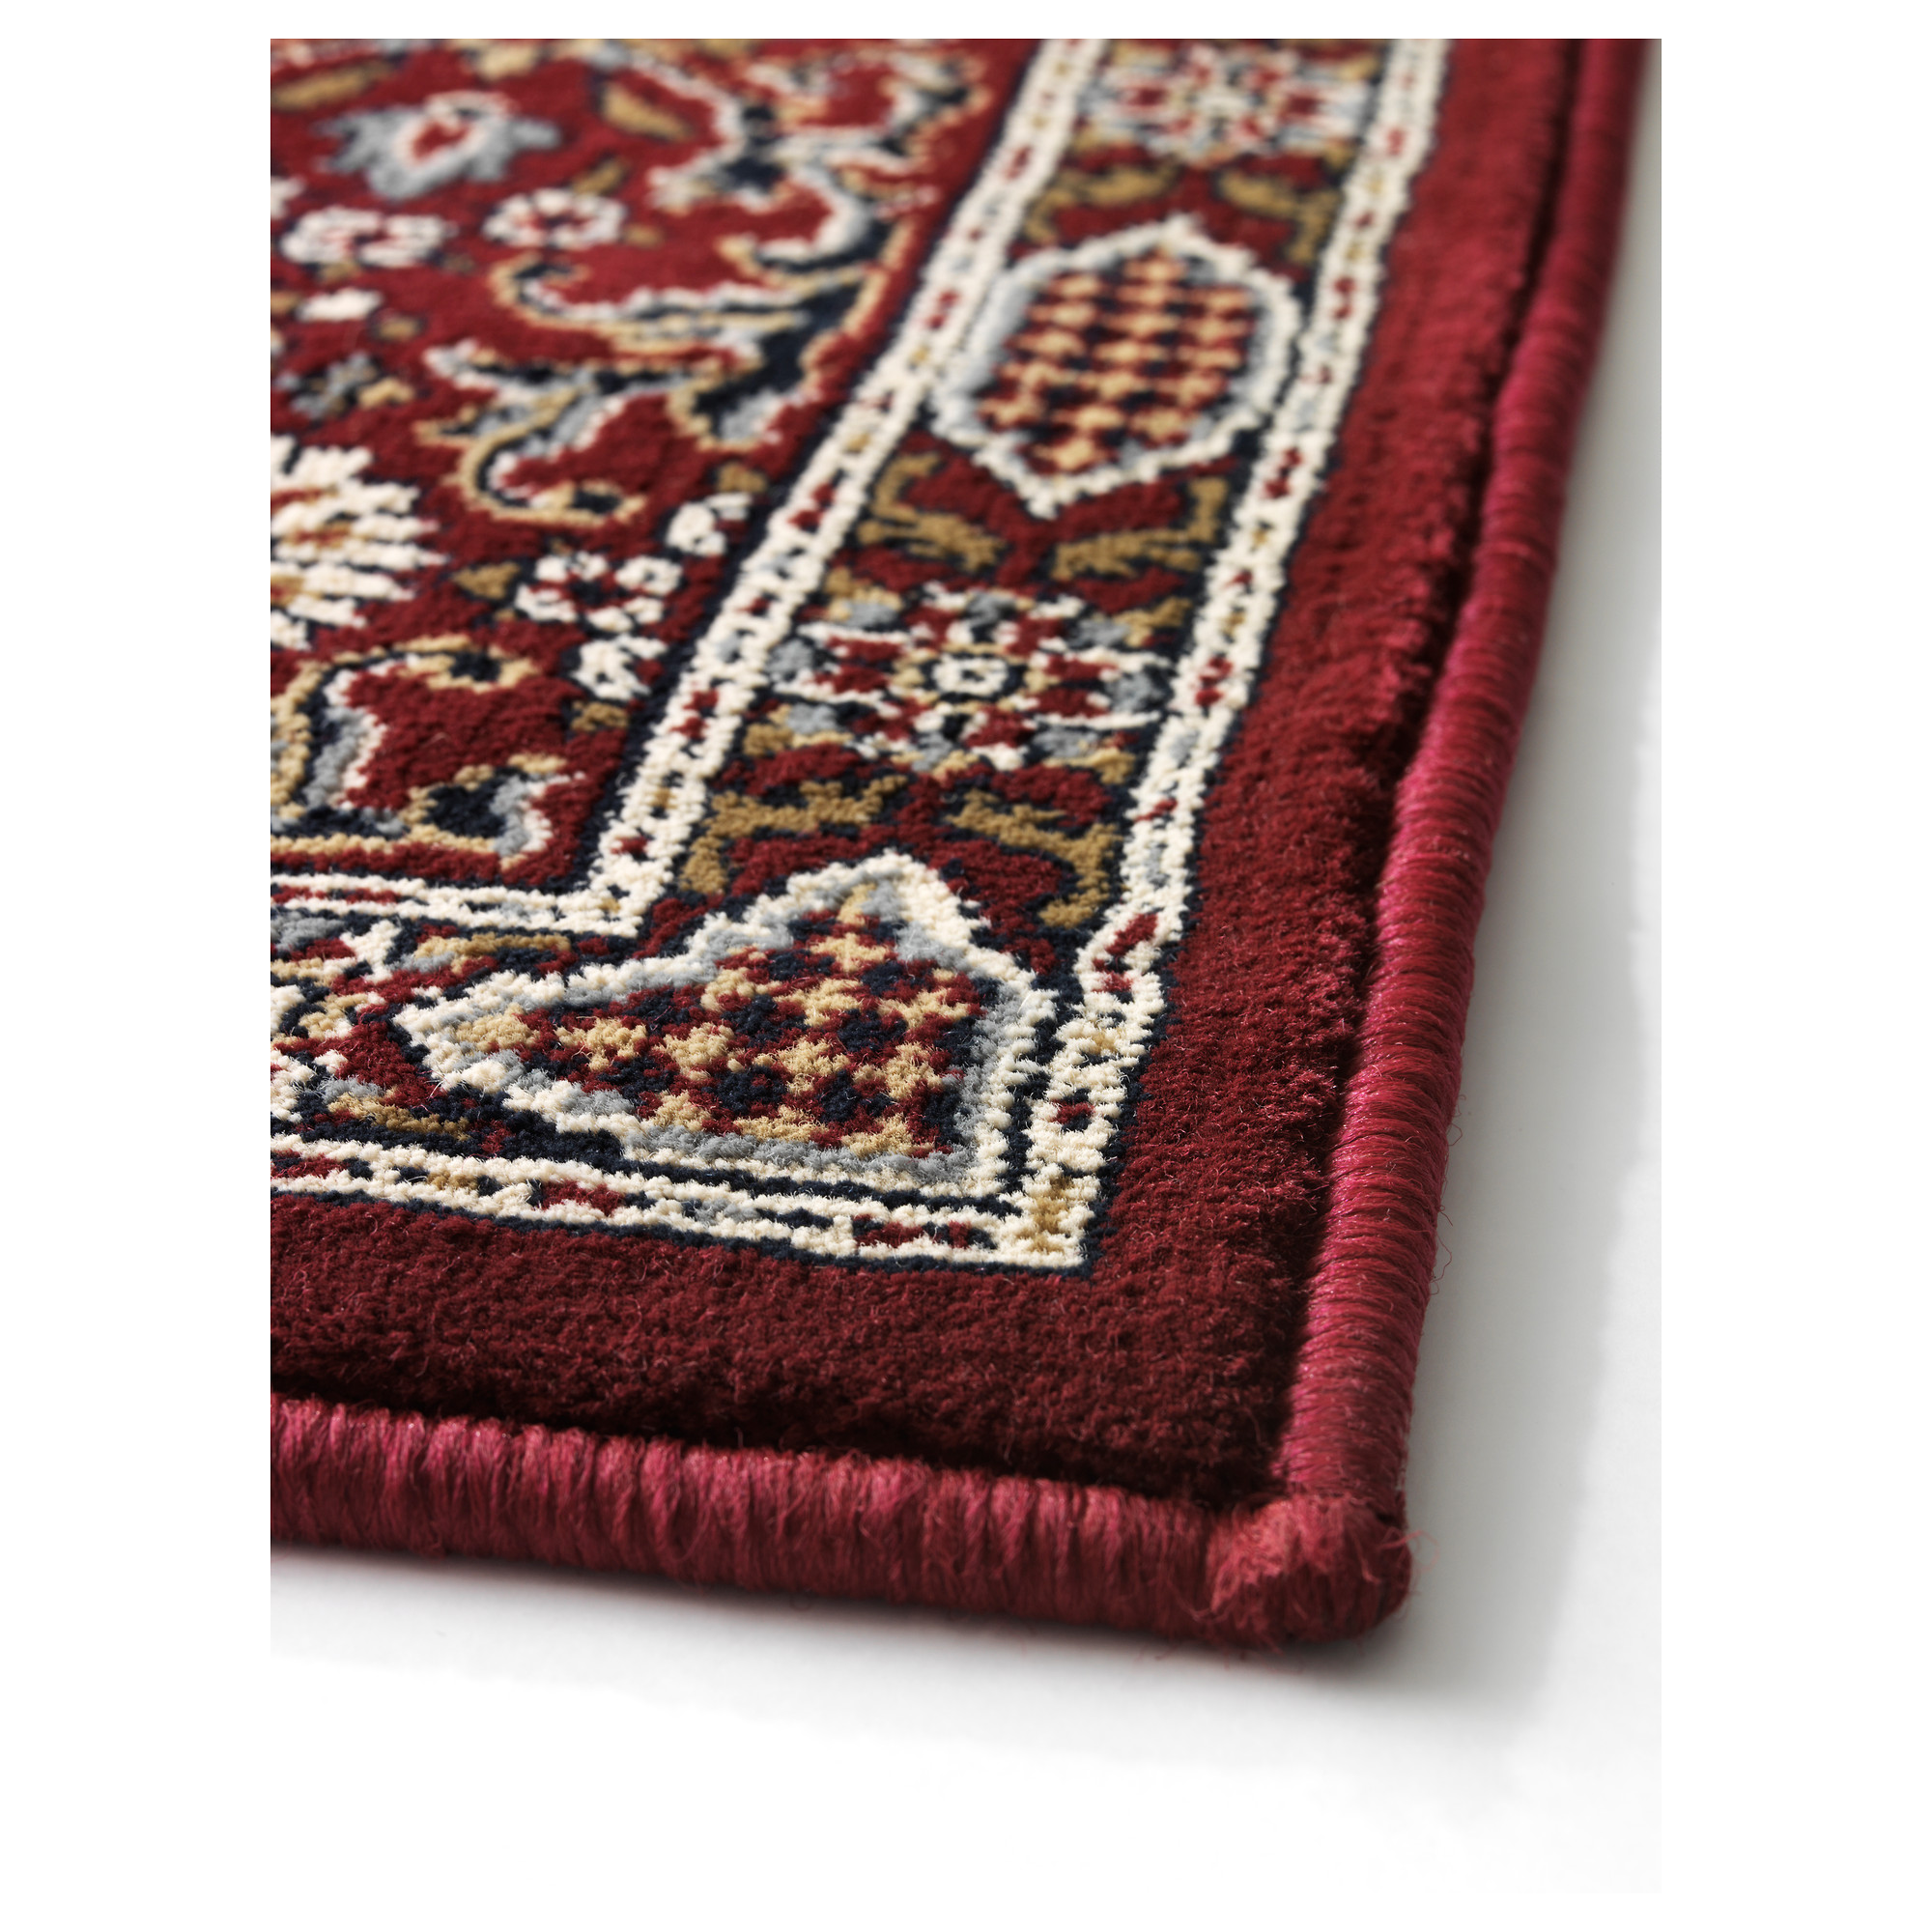 Ikea Rugs Sale Uk: Ikea Valby Rug